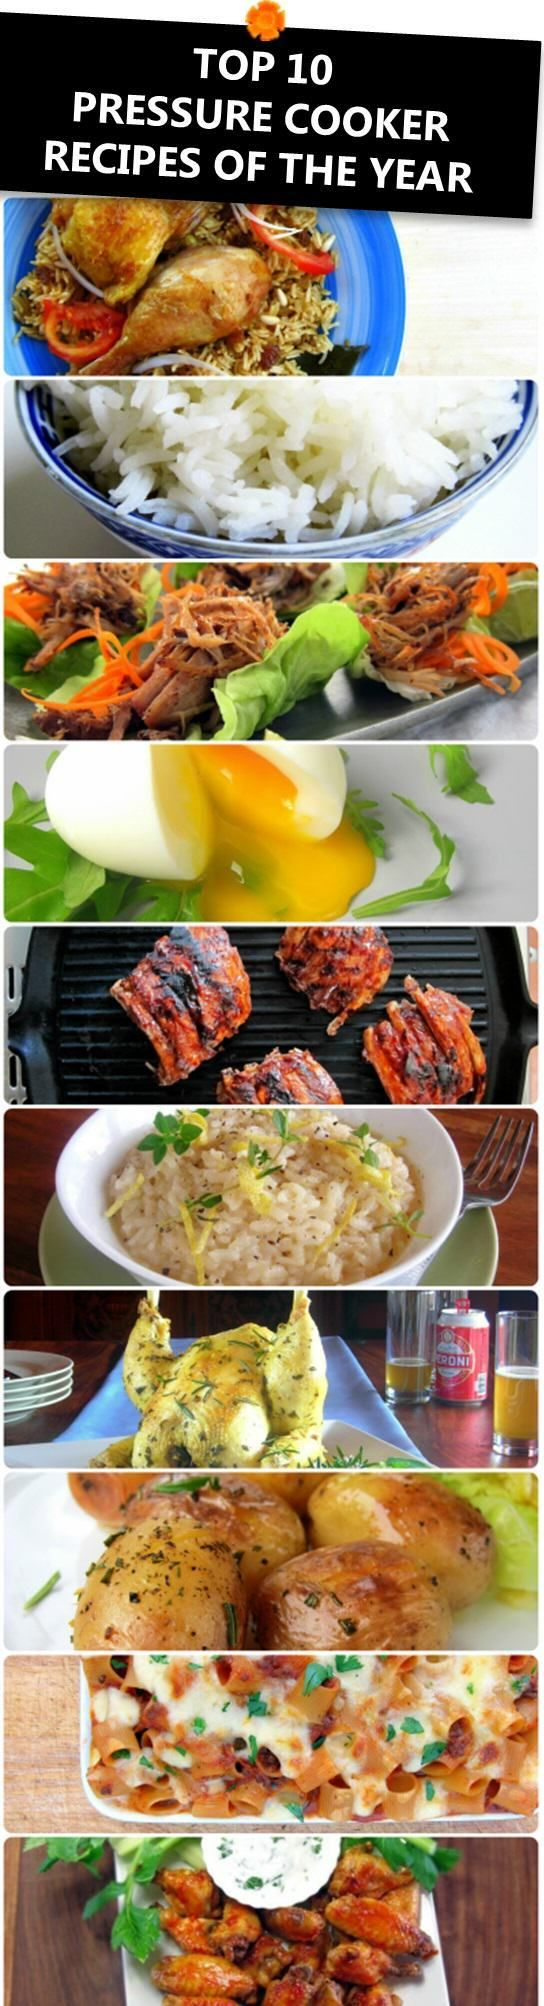 Top 10 Pressure Cooker Recipes of the Year 2014